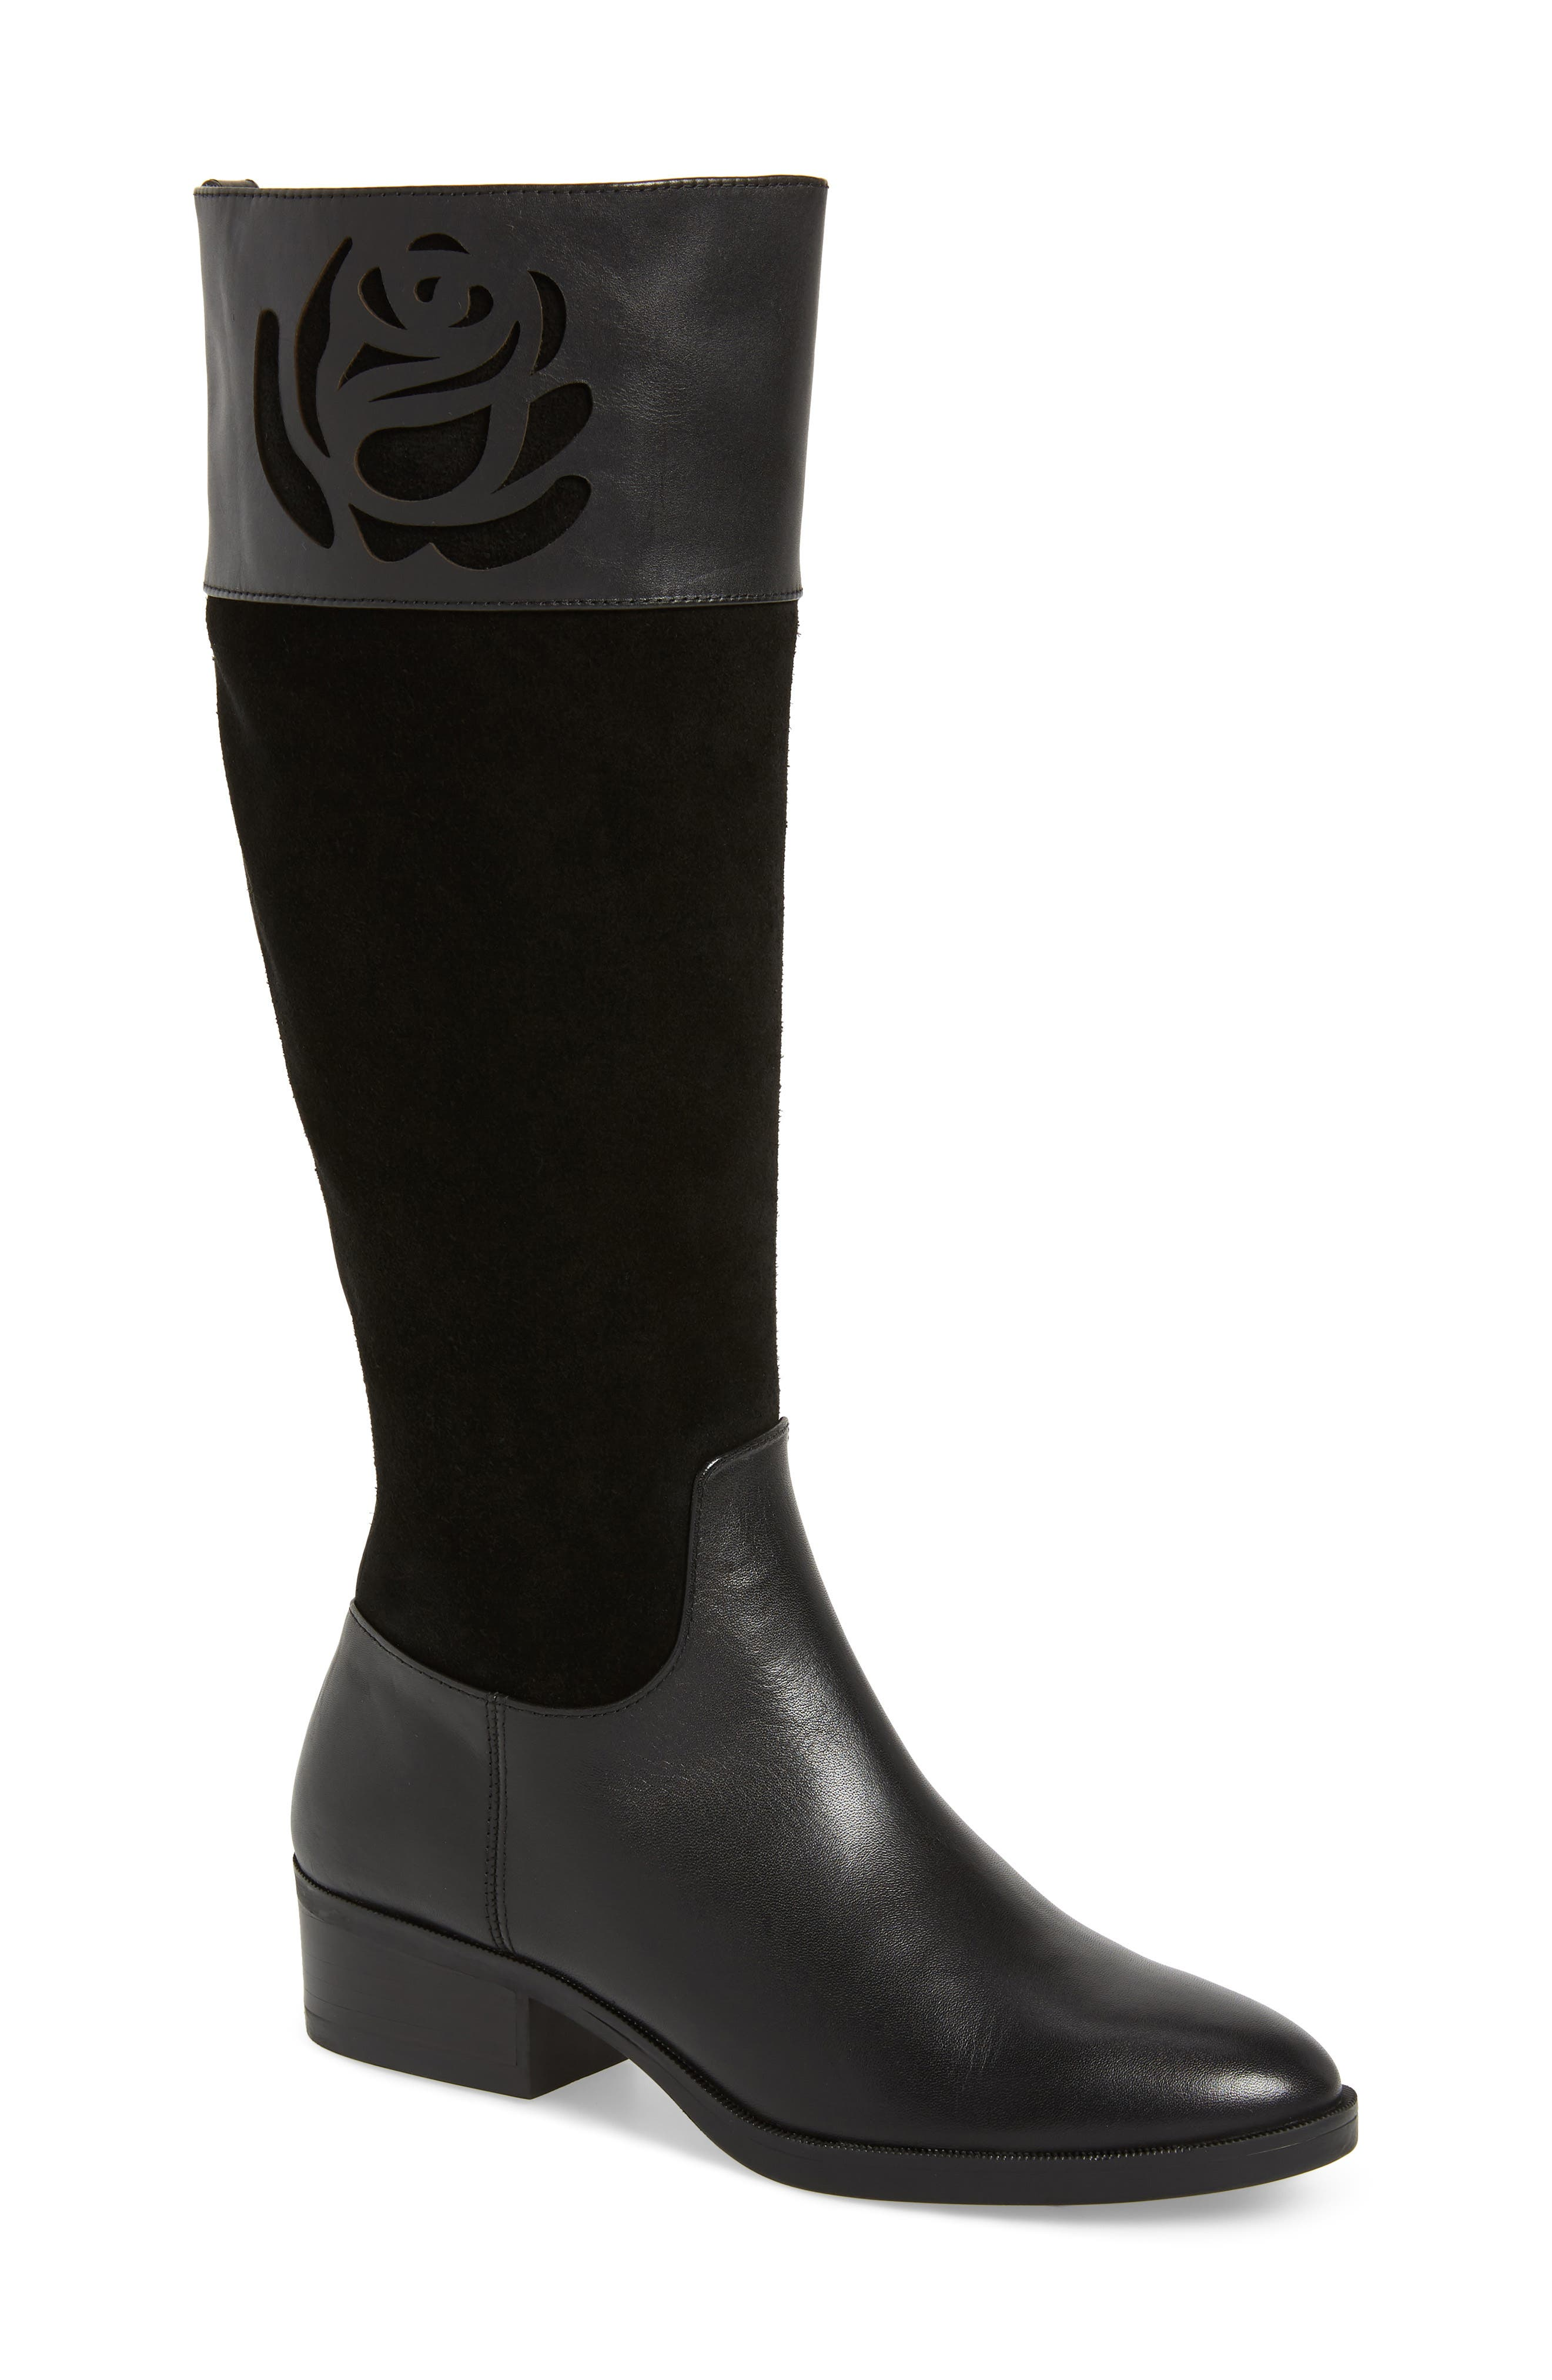 Taryn Rose Georgia Water Resistant Collection Boot, Black